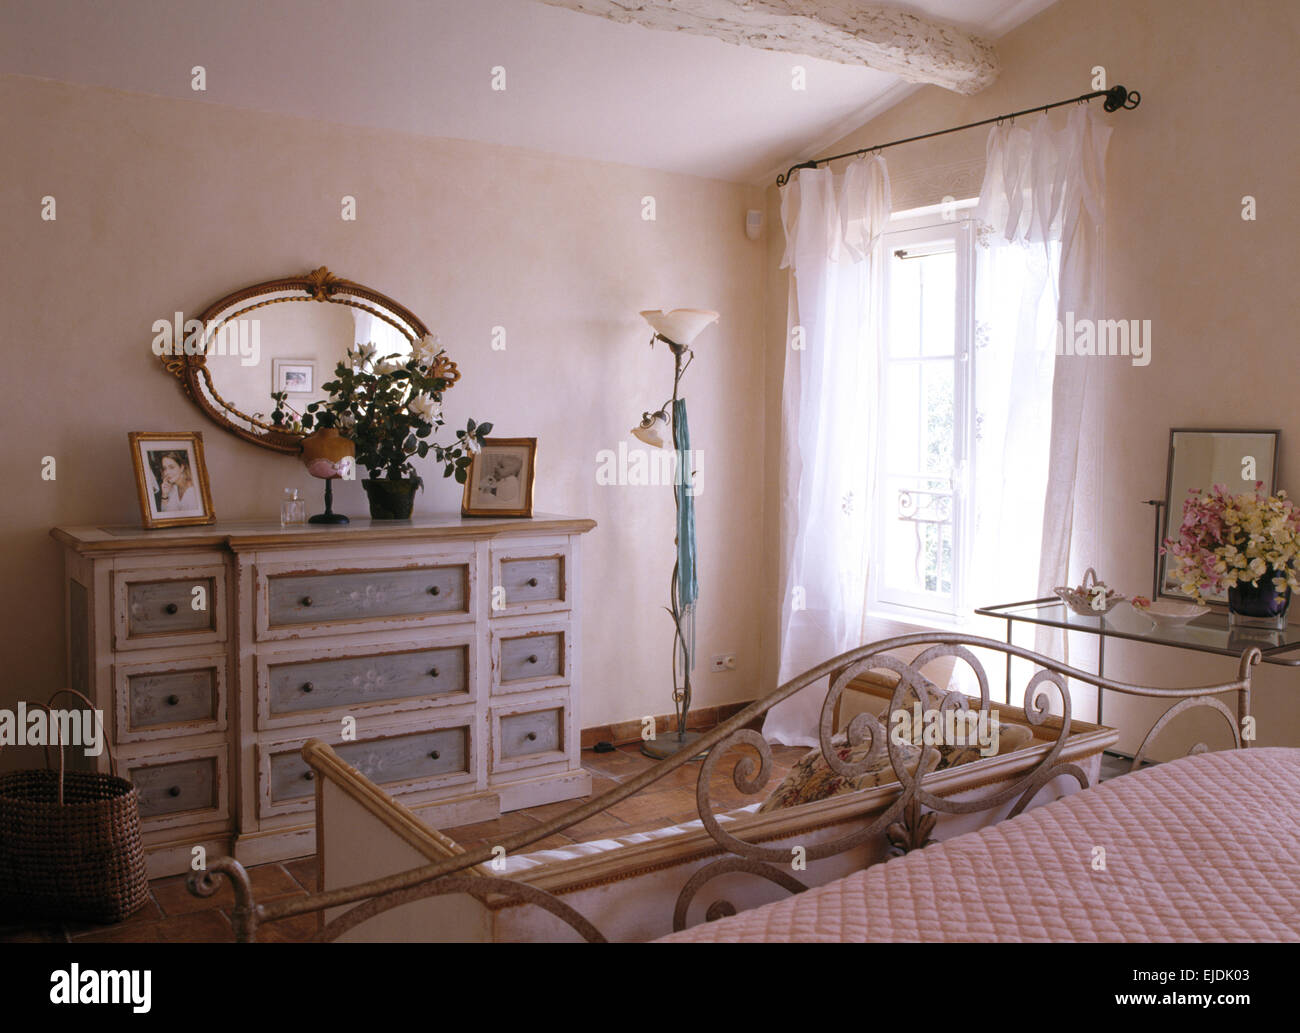 French country bedroom curtains - Oval Mirror Above Painted Chest Of Drawers In French Country Bedroom With White Voile Curtains On The Window